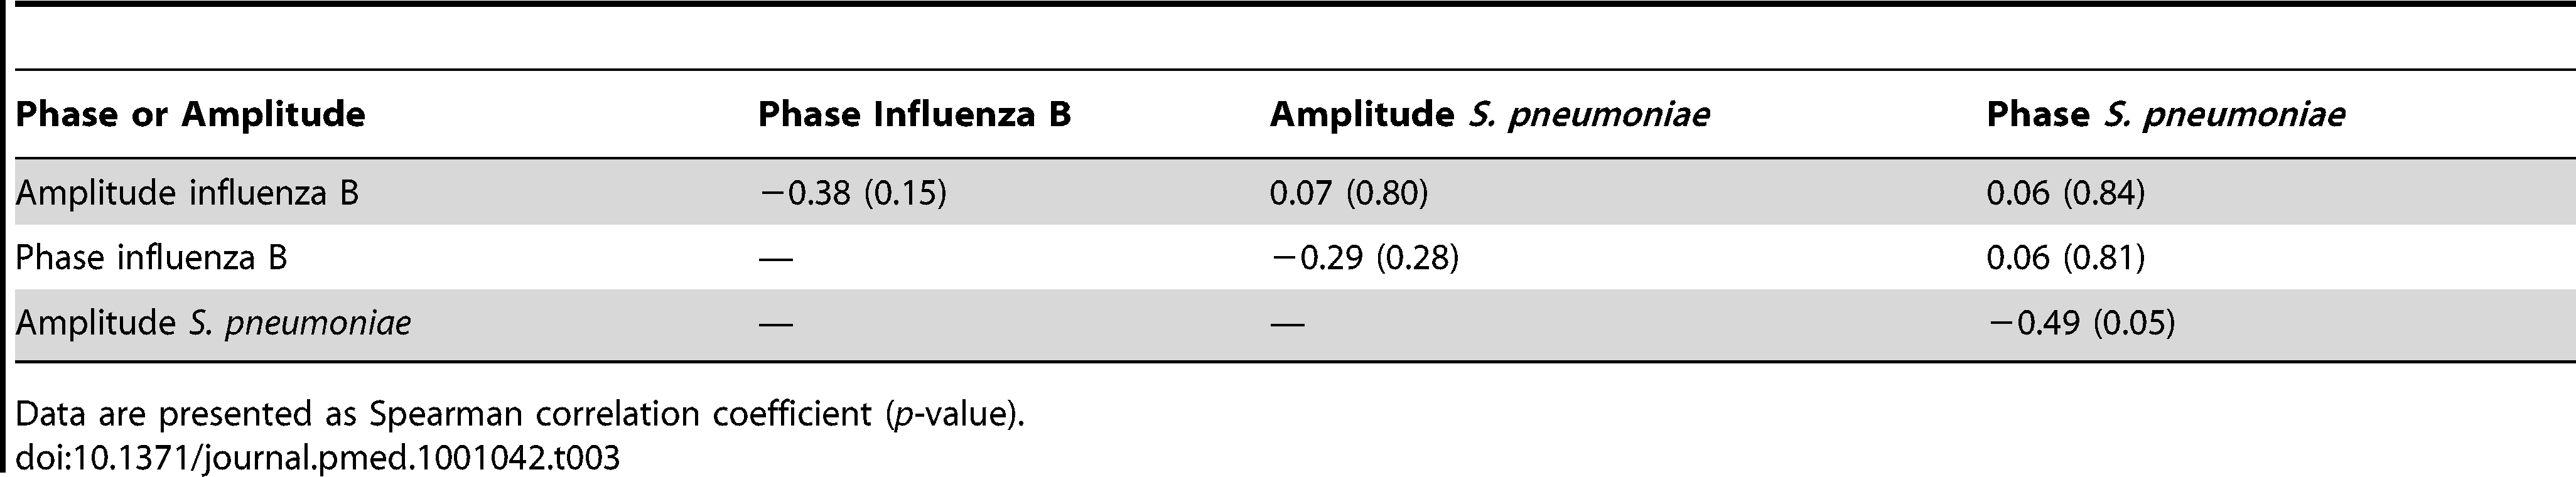 Spearman correlation coefficients for the association of phase and amplitude terms for influenza B and pneumococcal sine waves.